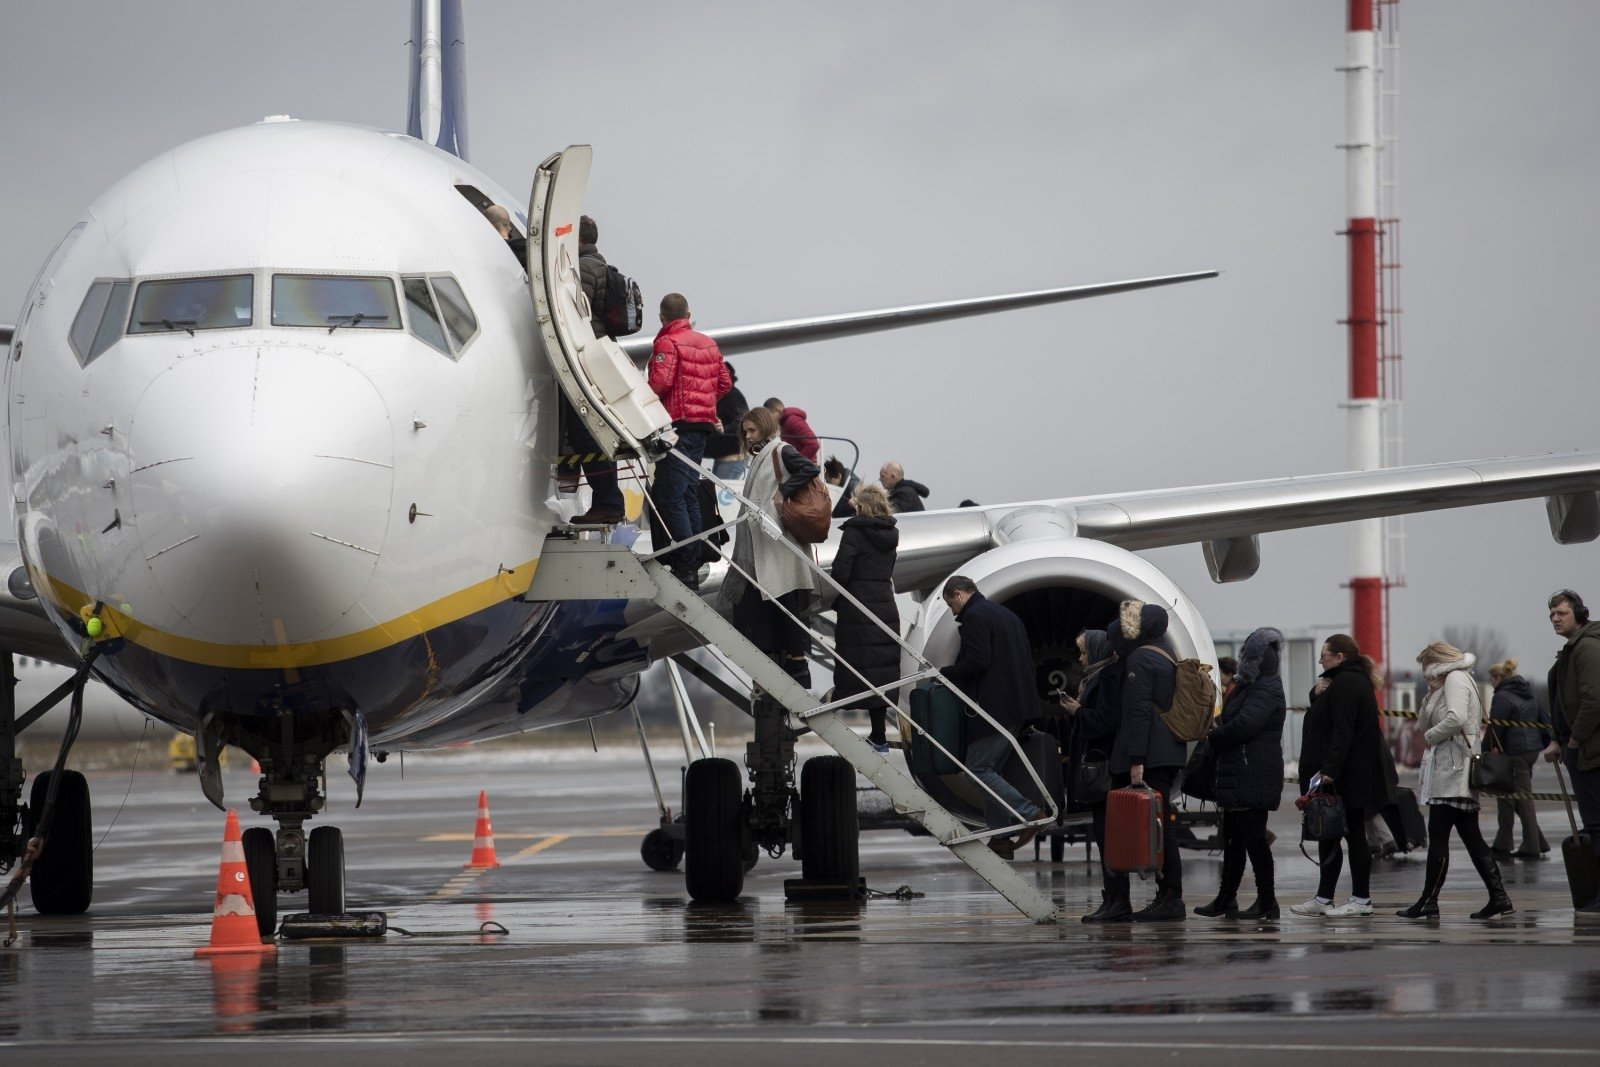 Economic reasons main driver behind emigration from